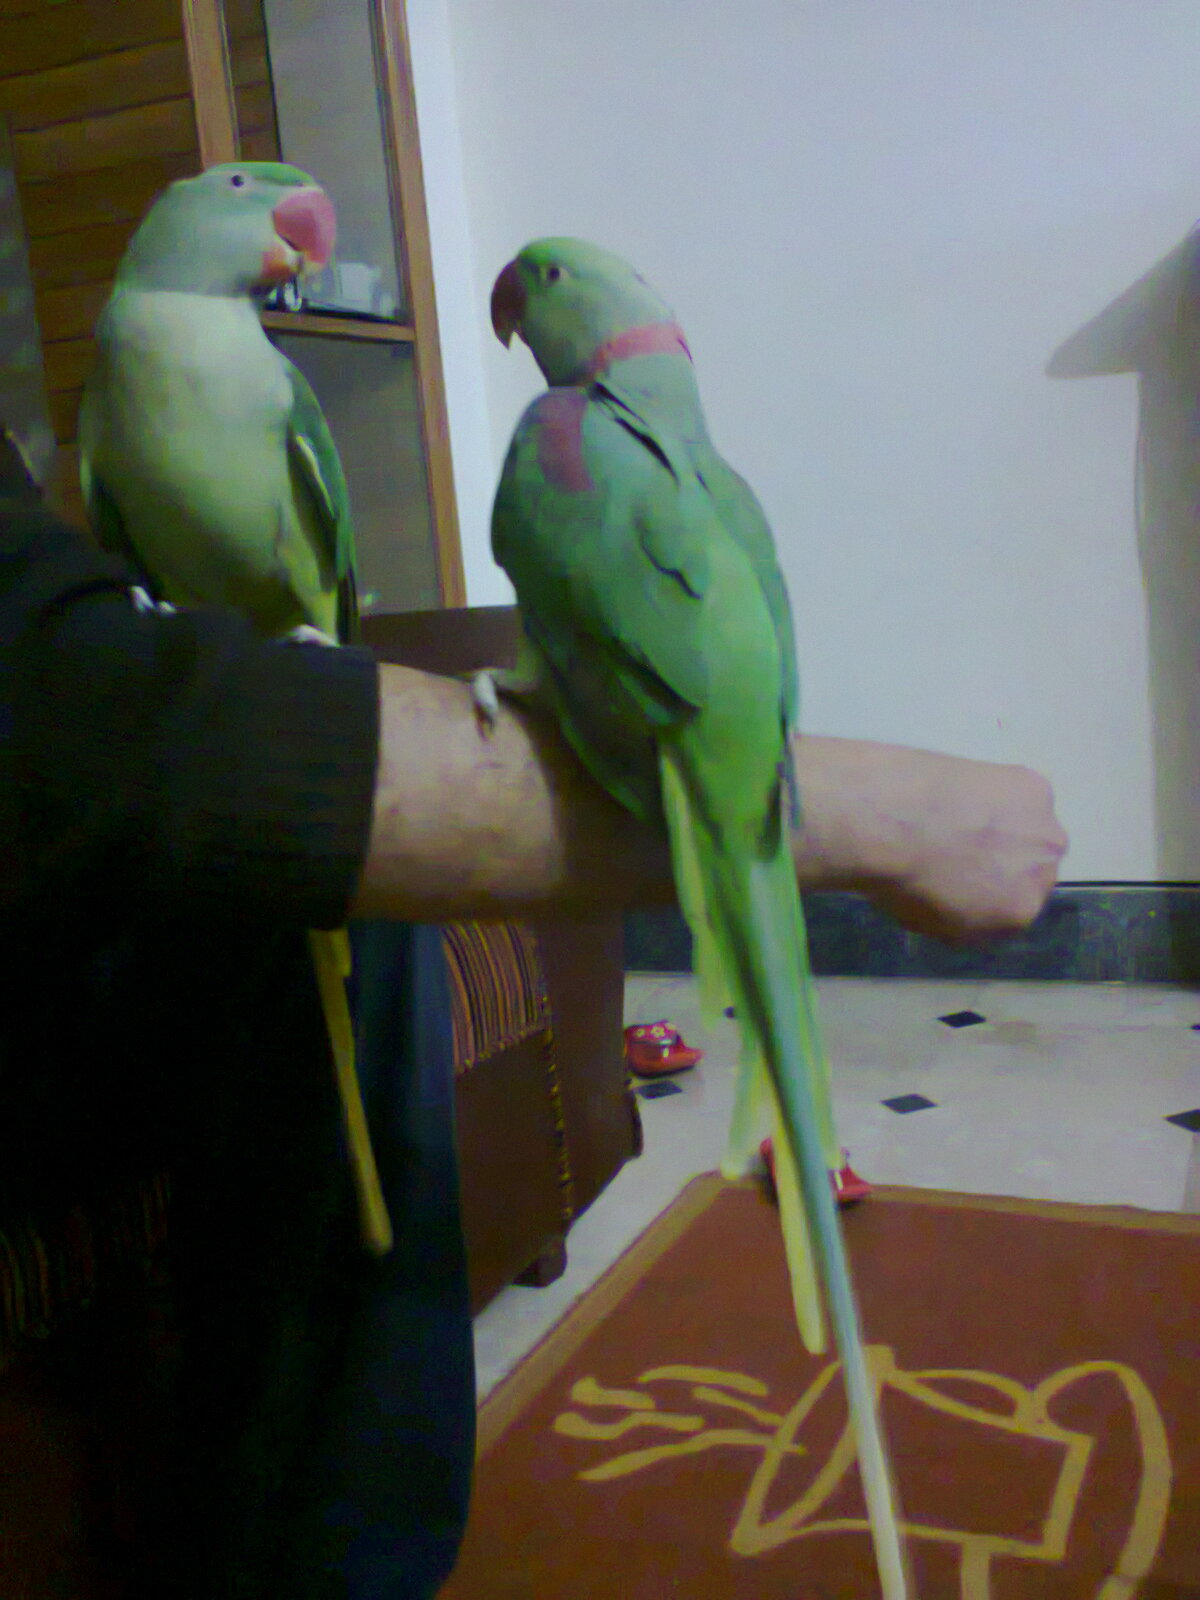 Pets Pakistan Hand Tamed Talking Raw Parrot Pair